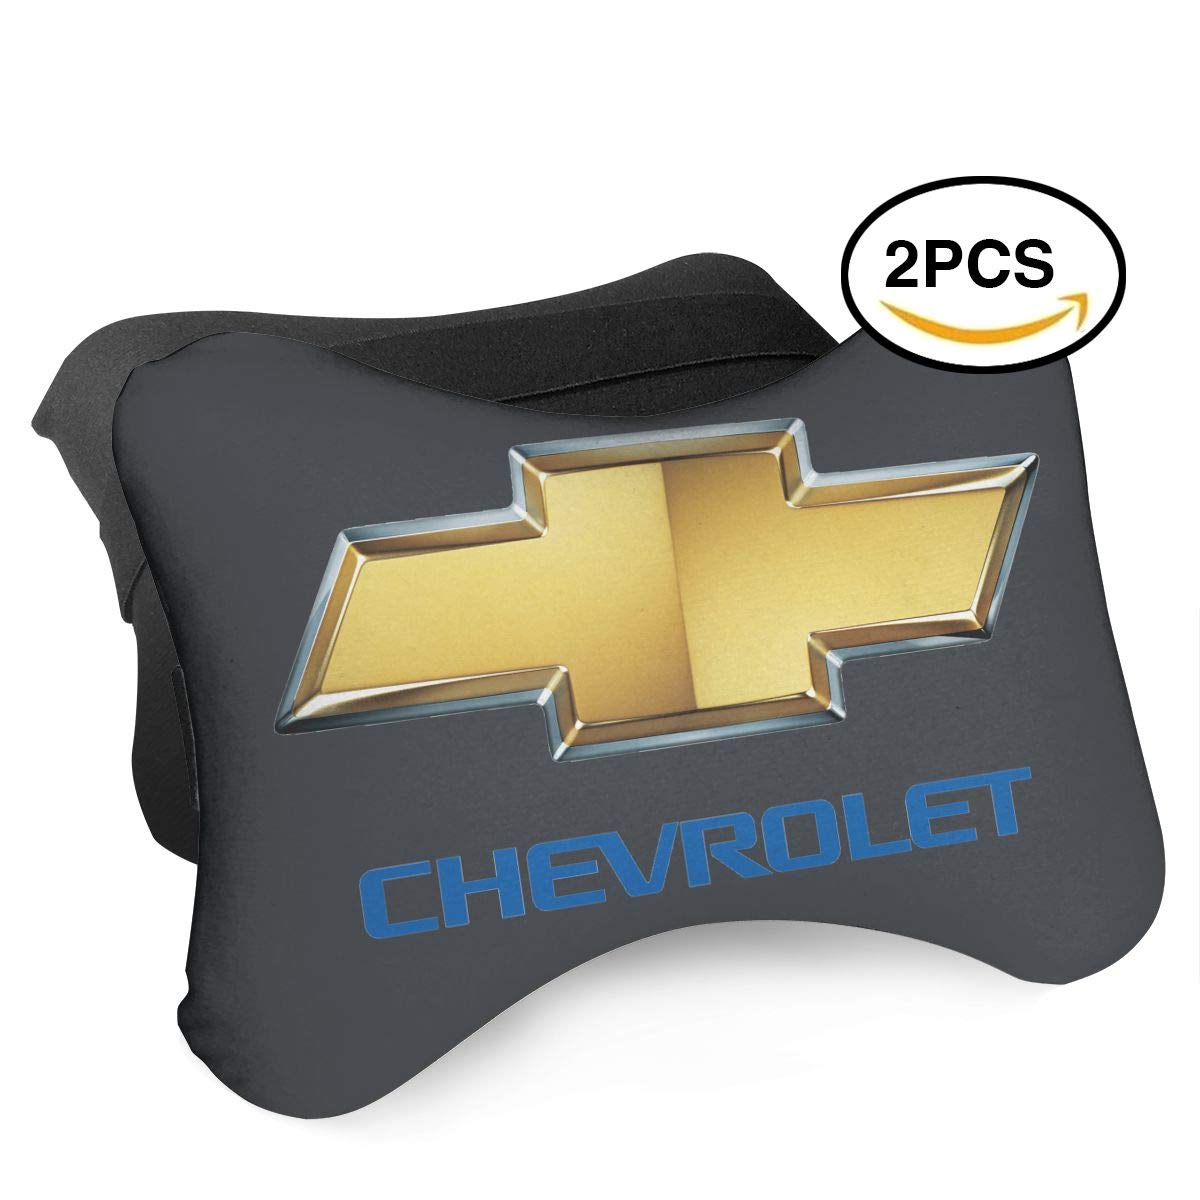 Chevrolet Car Logo Car Neck Pillow pswpsmtys